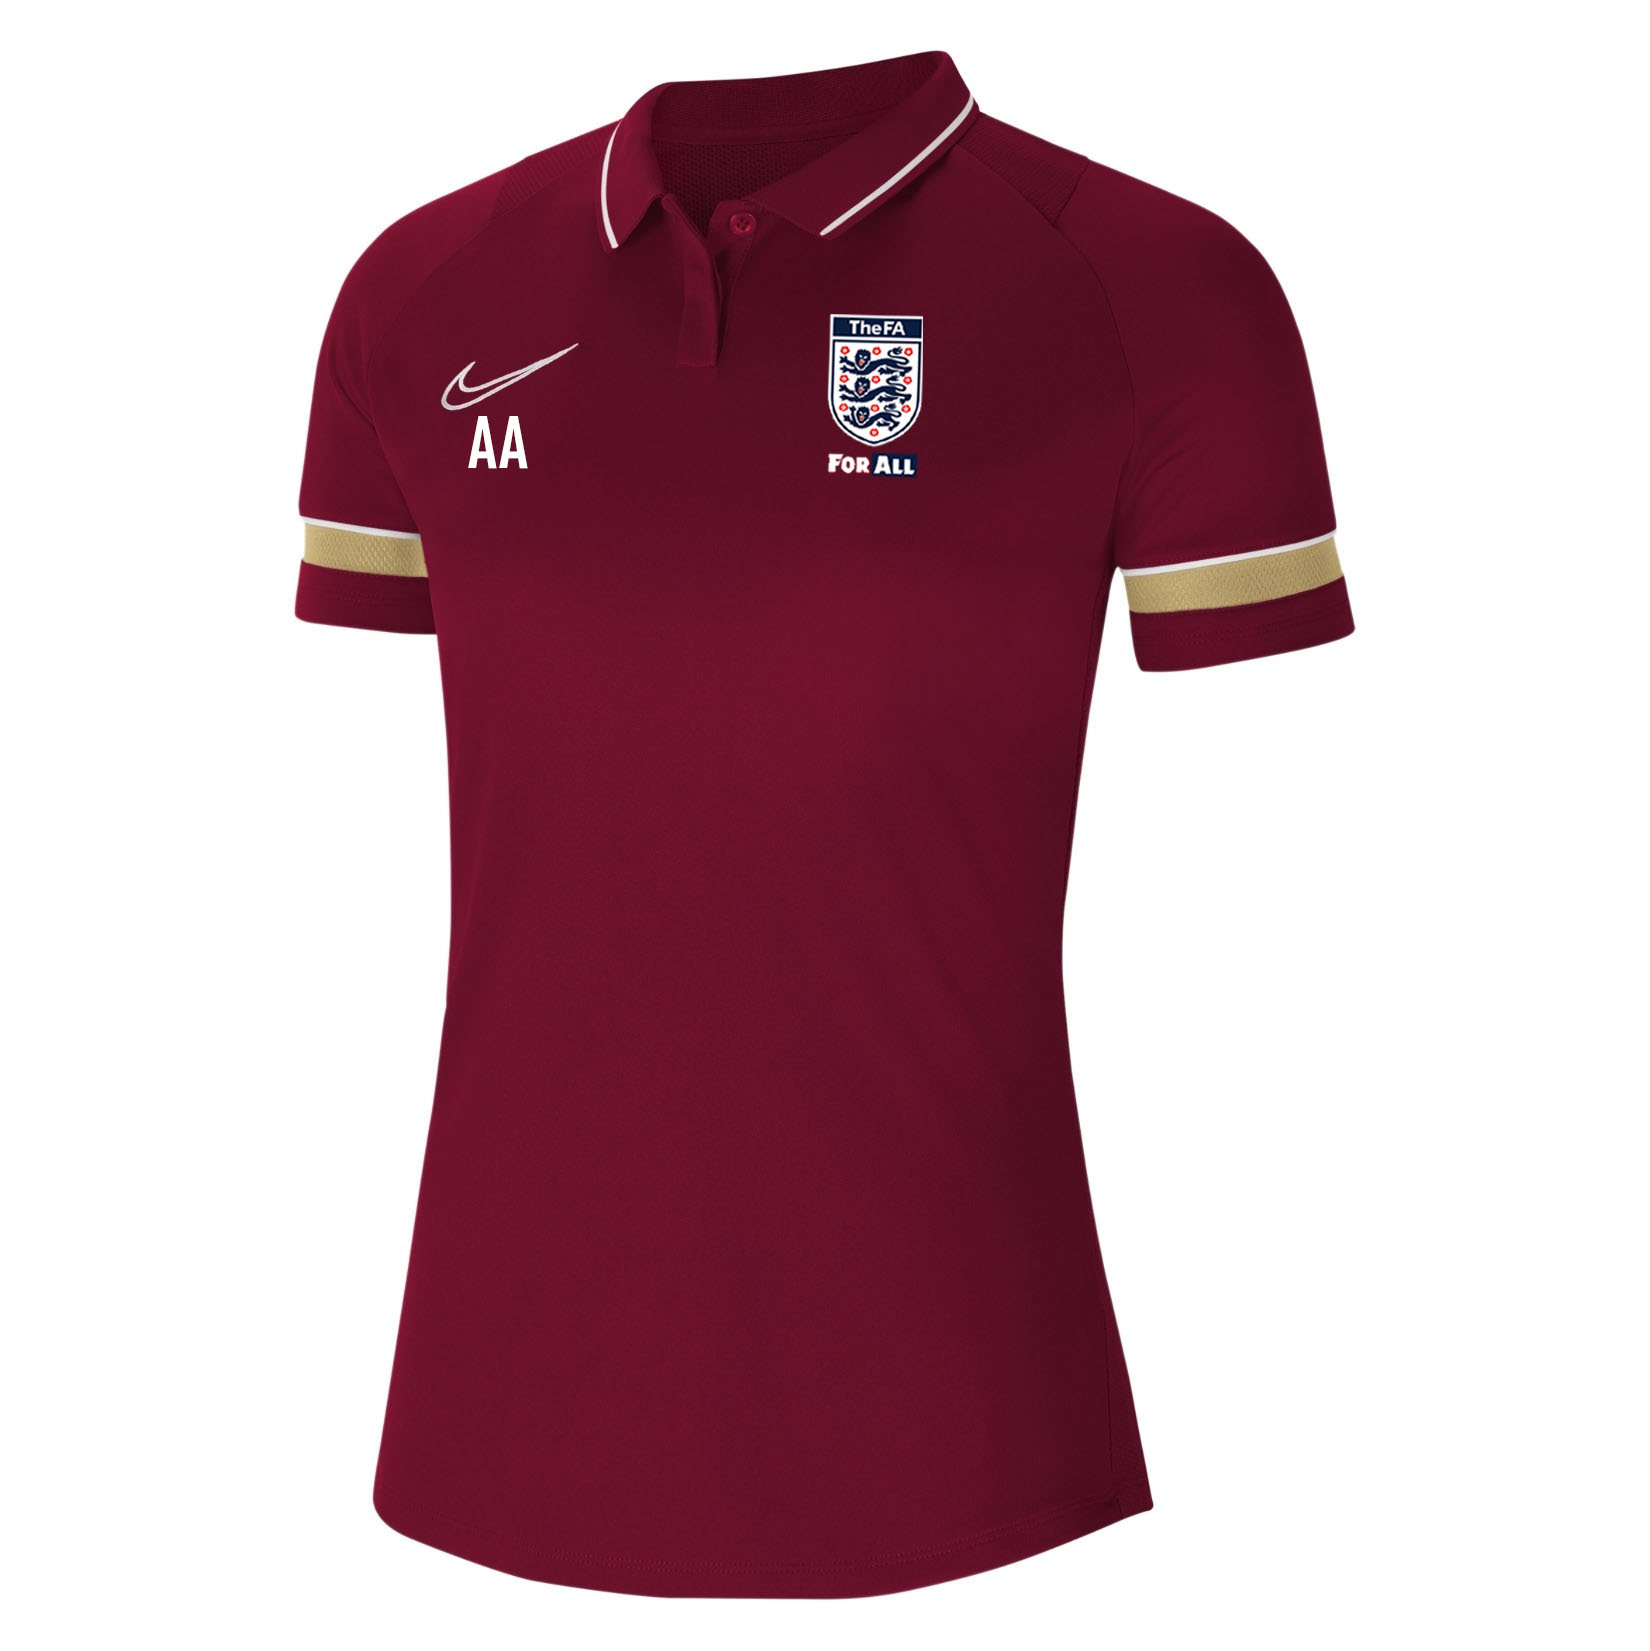 Nike Womens Academy 21 Performance Polo (W) Team Red-White-Jersey Gold-White